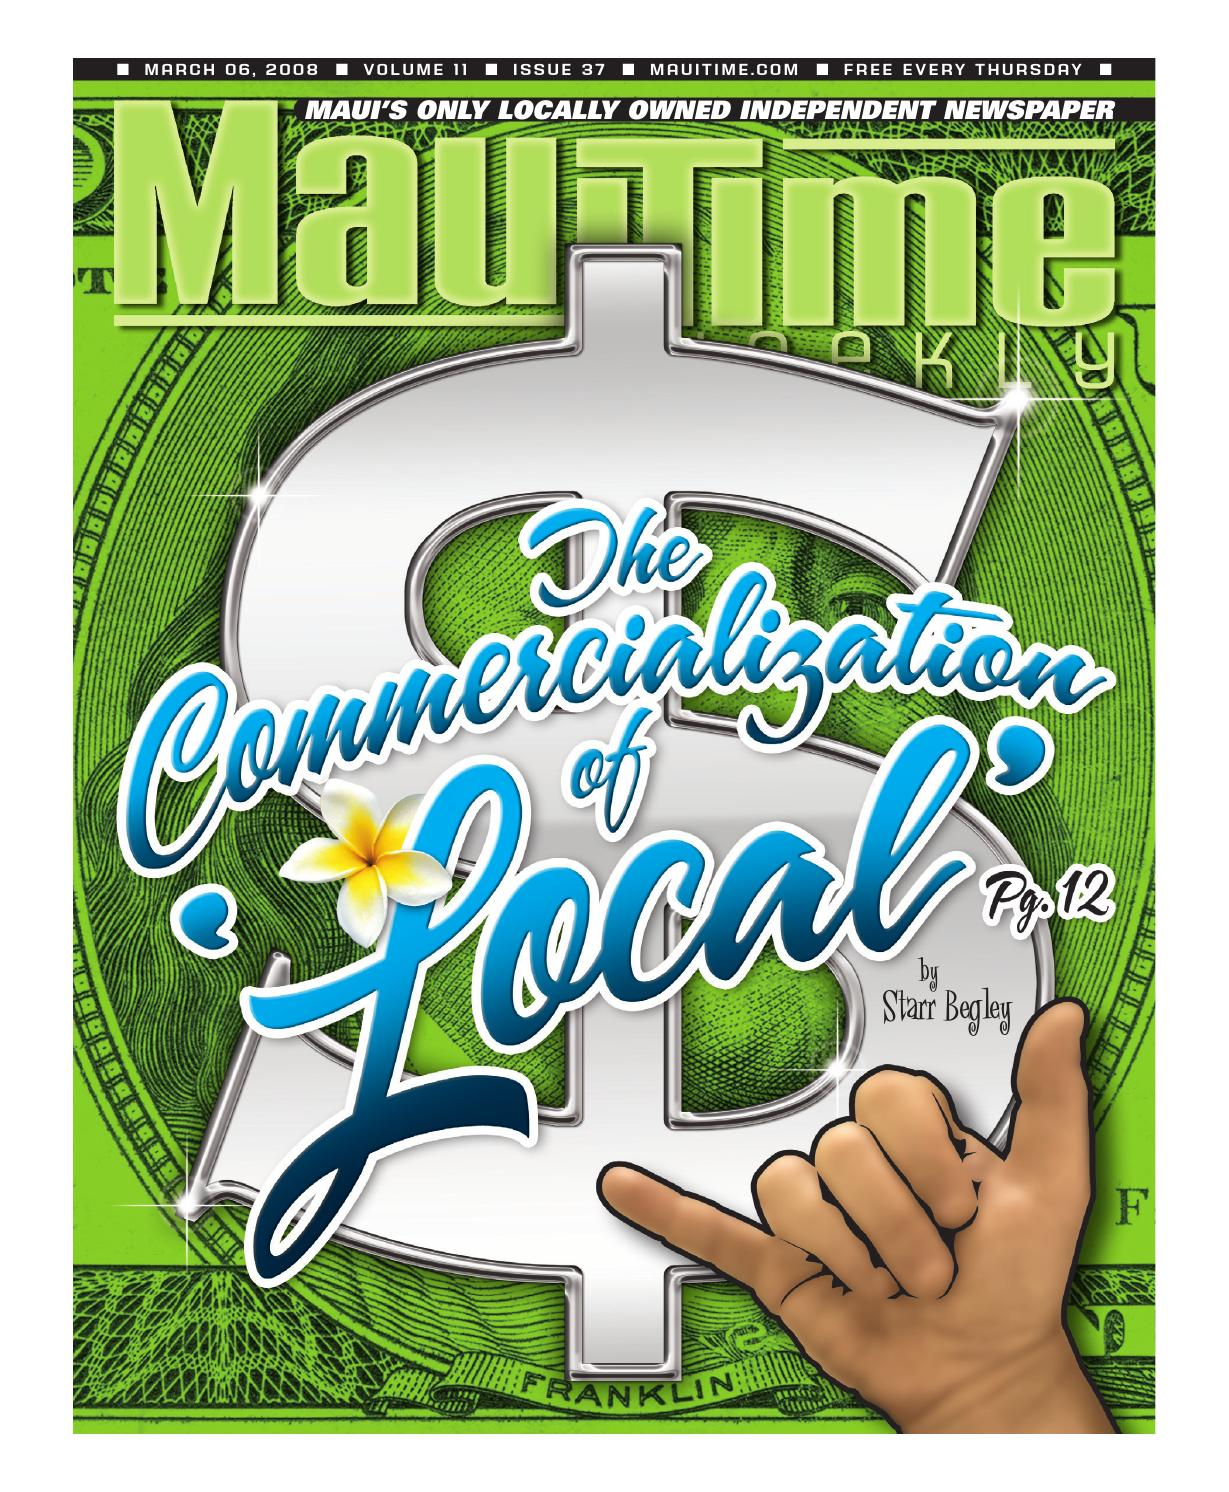 11.37 The Commercialization Of Local, March 6, 2008, Volume 11 ...